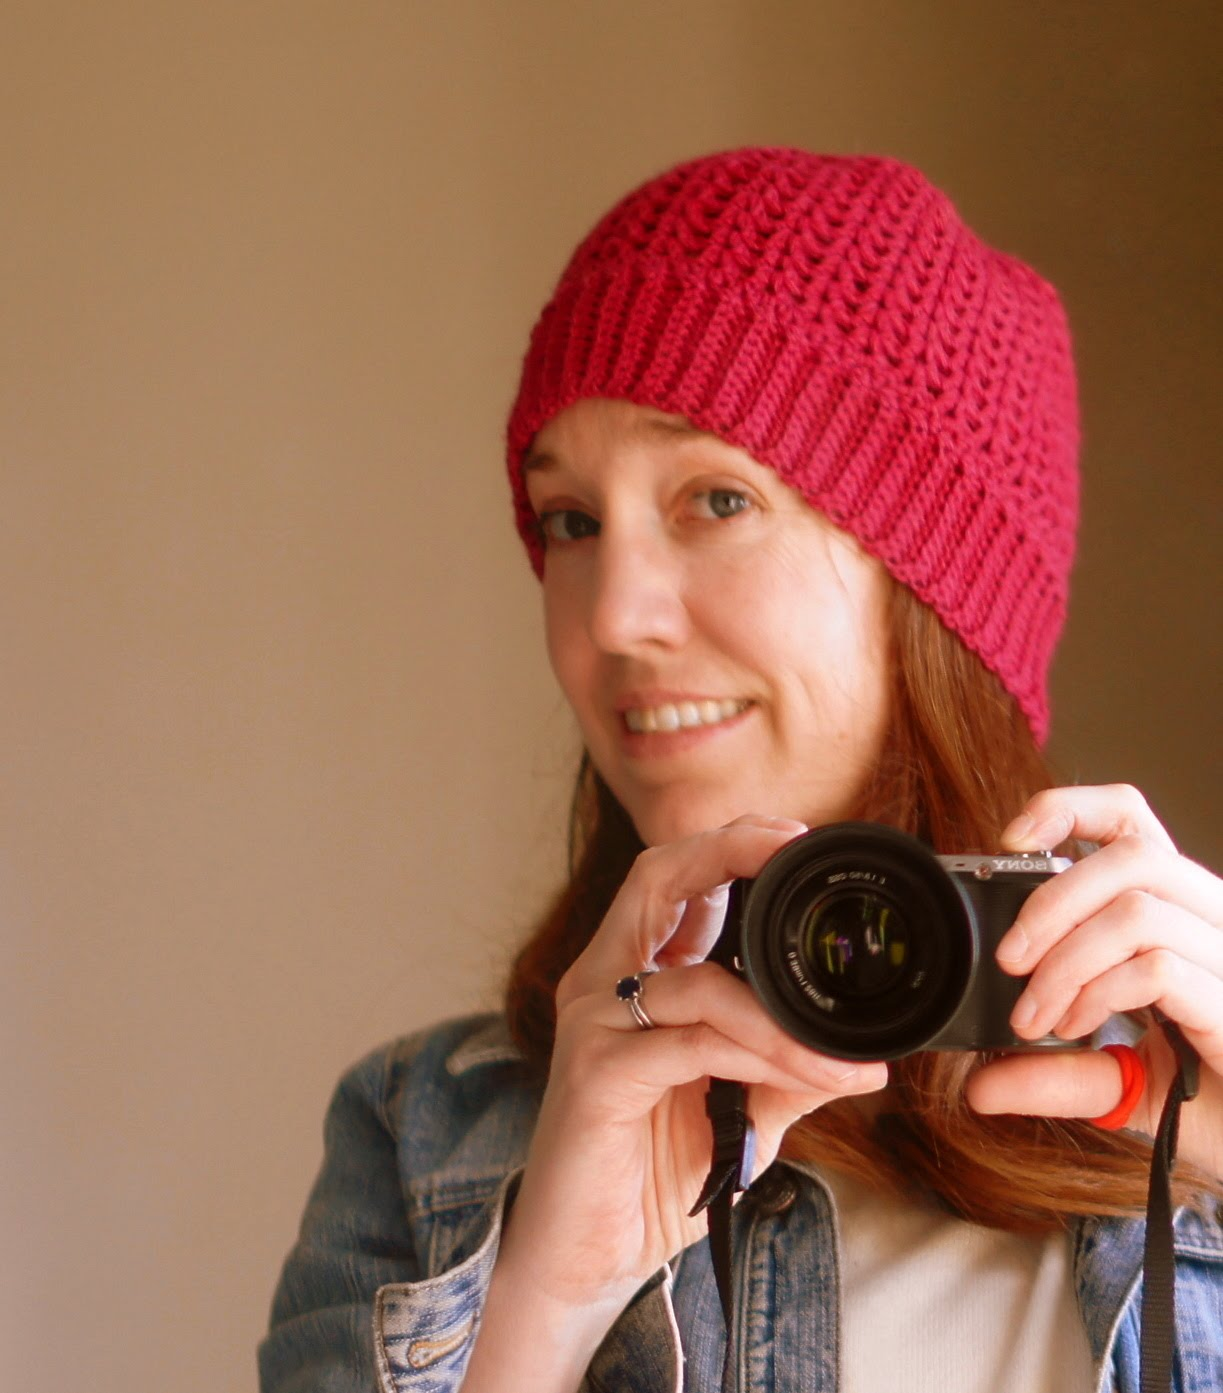 Crochet V Stitch Hat : ... Hank n Skein: Free Crochet Hat Pattern - The Perfect V-Stitch Hat